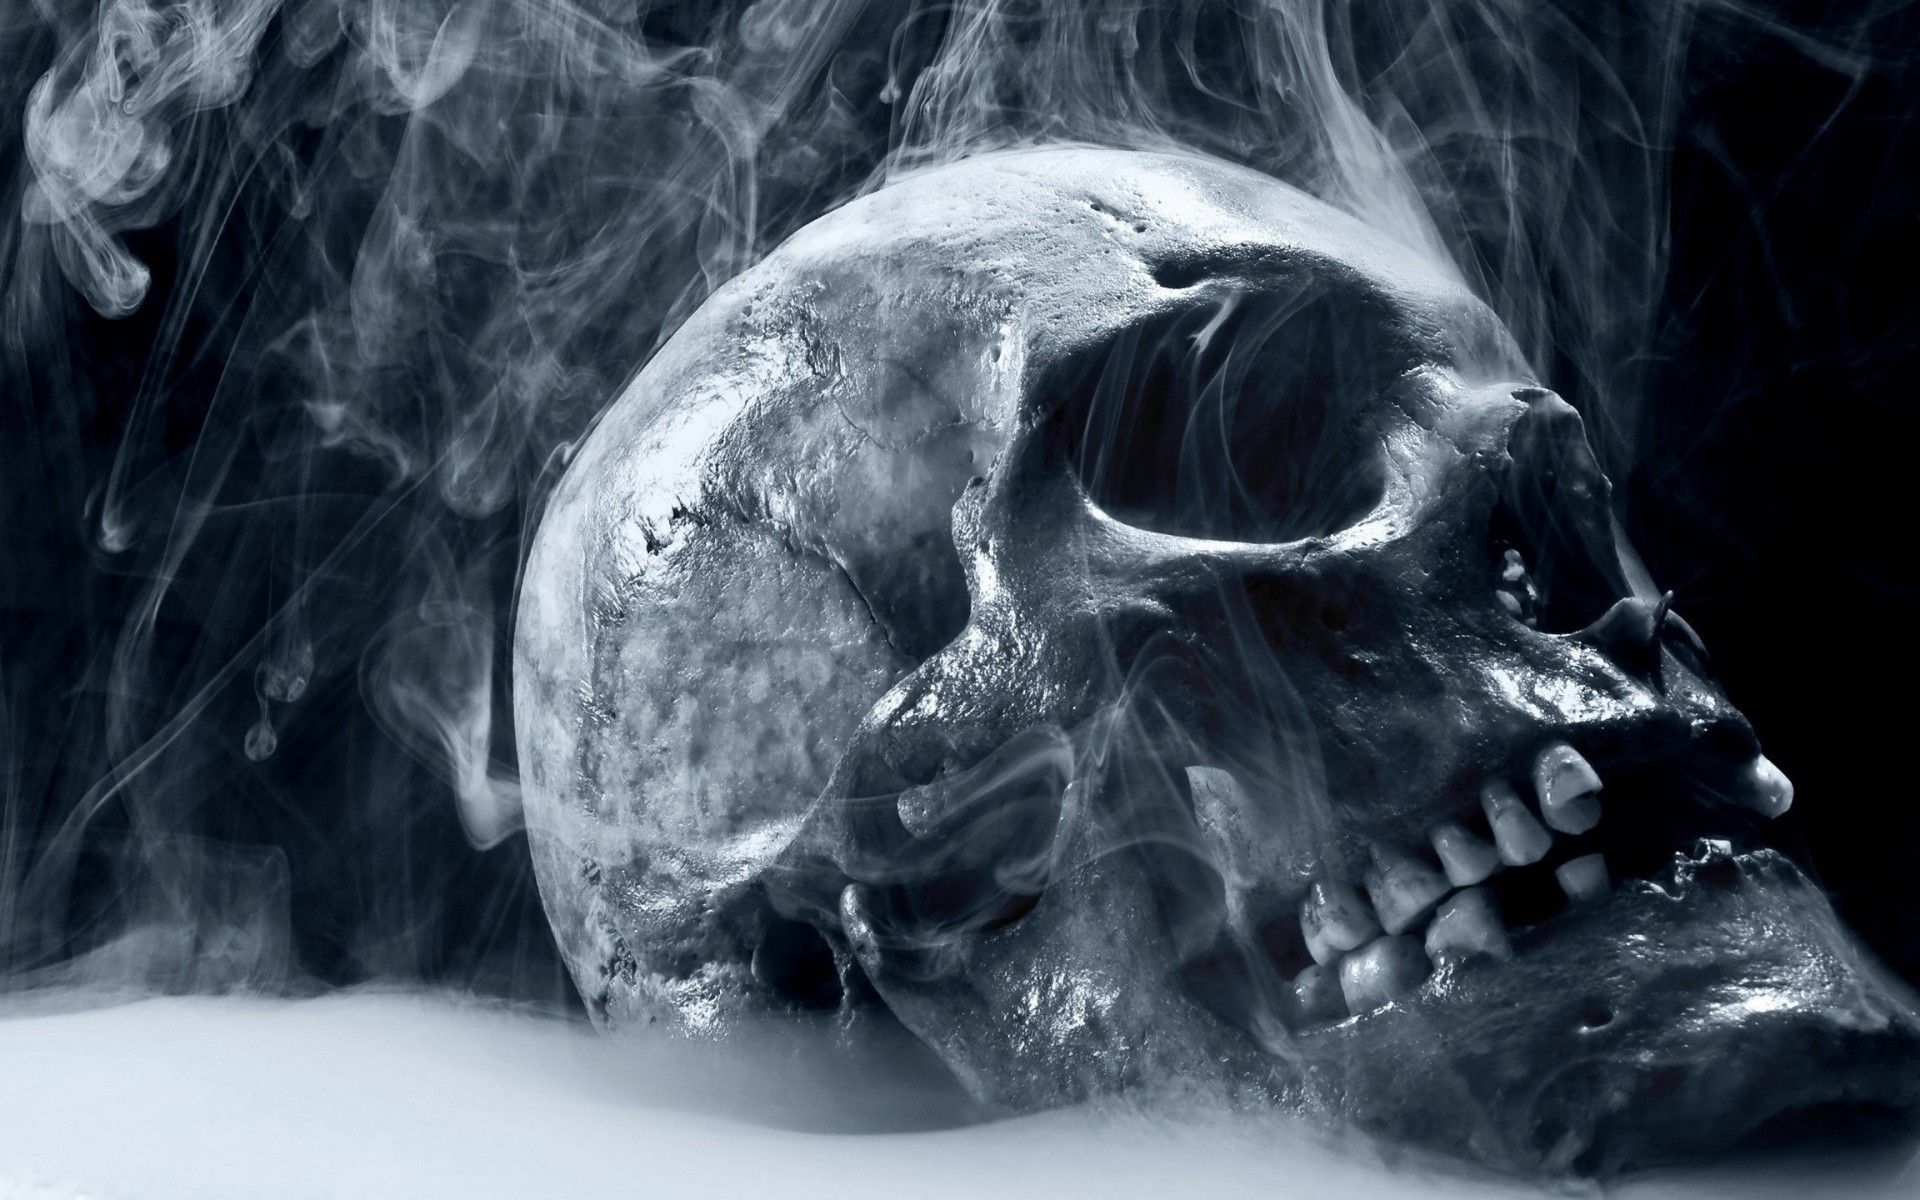 Cool-Skull-Cool-Skull-Pictures-1080p-with-1920x-Resolution-wallpaper-wp3804048